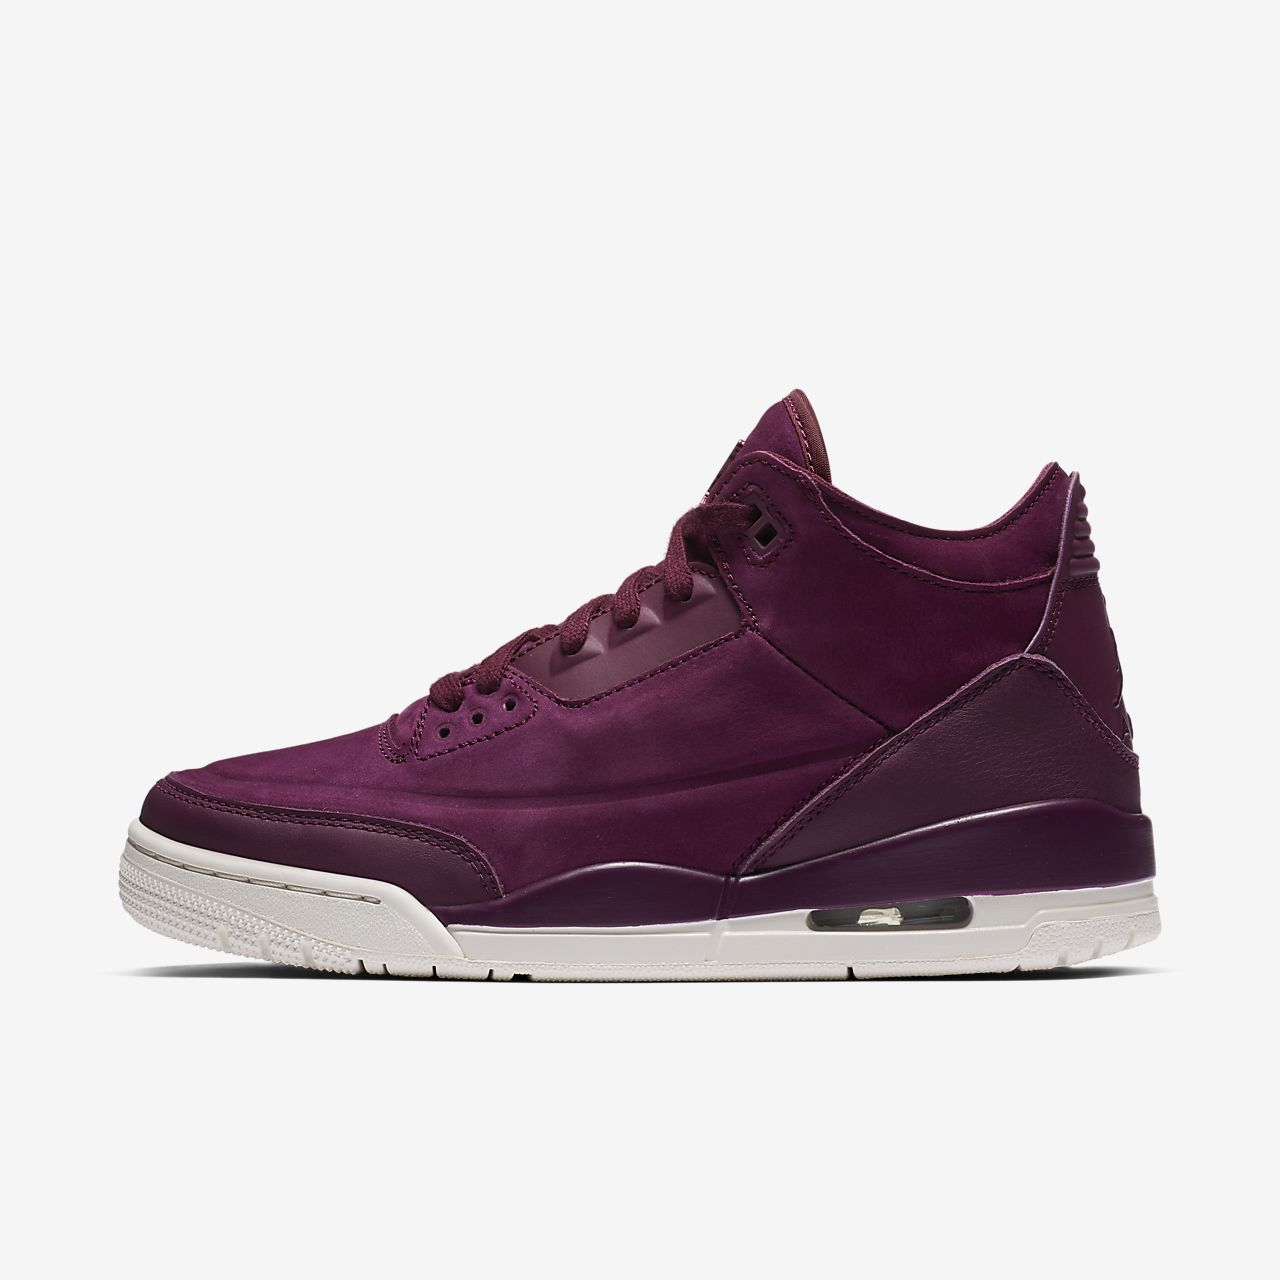 54308270a8b44 Scarpa Air Jordan 3 Retro SE - Donna. Nike.com IT